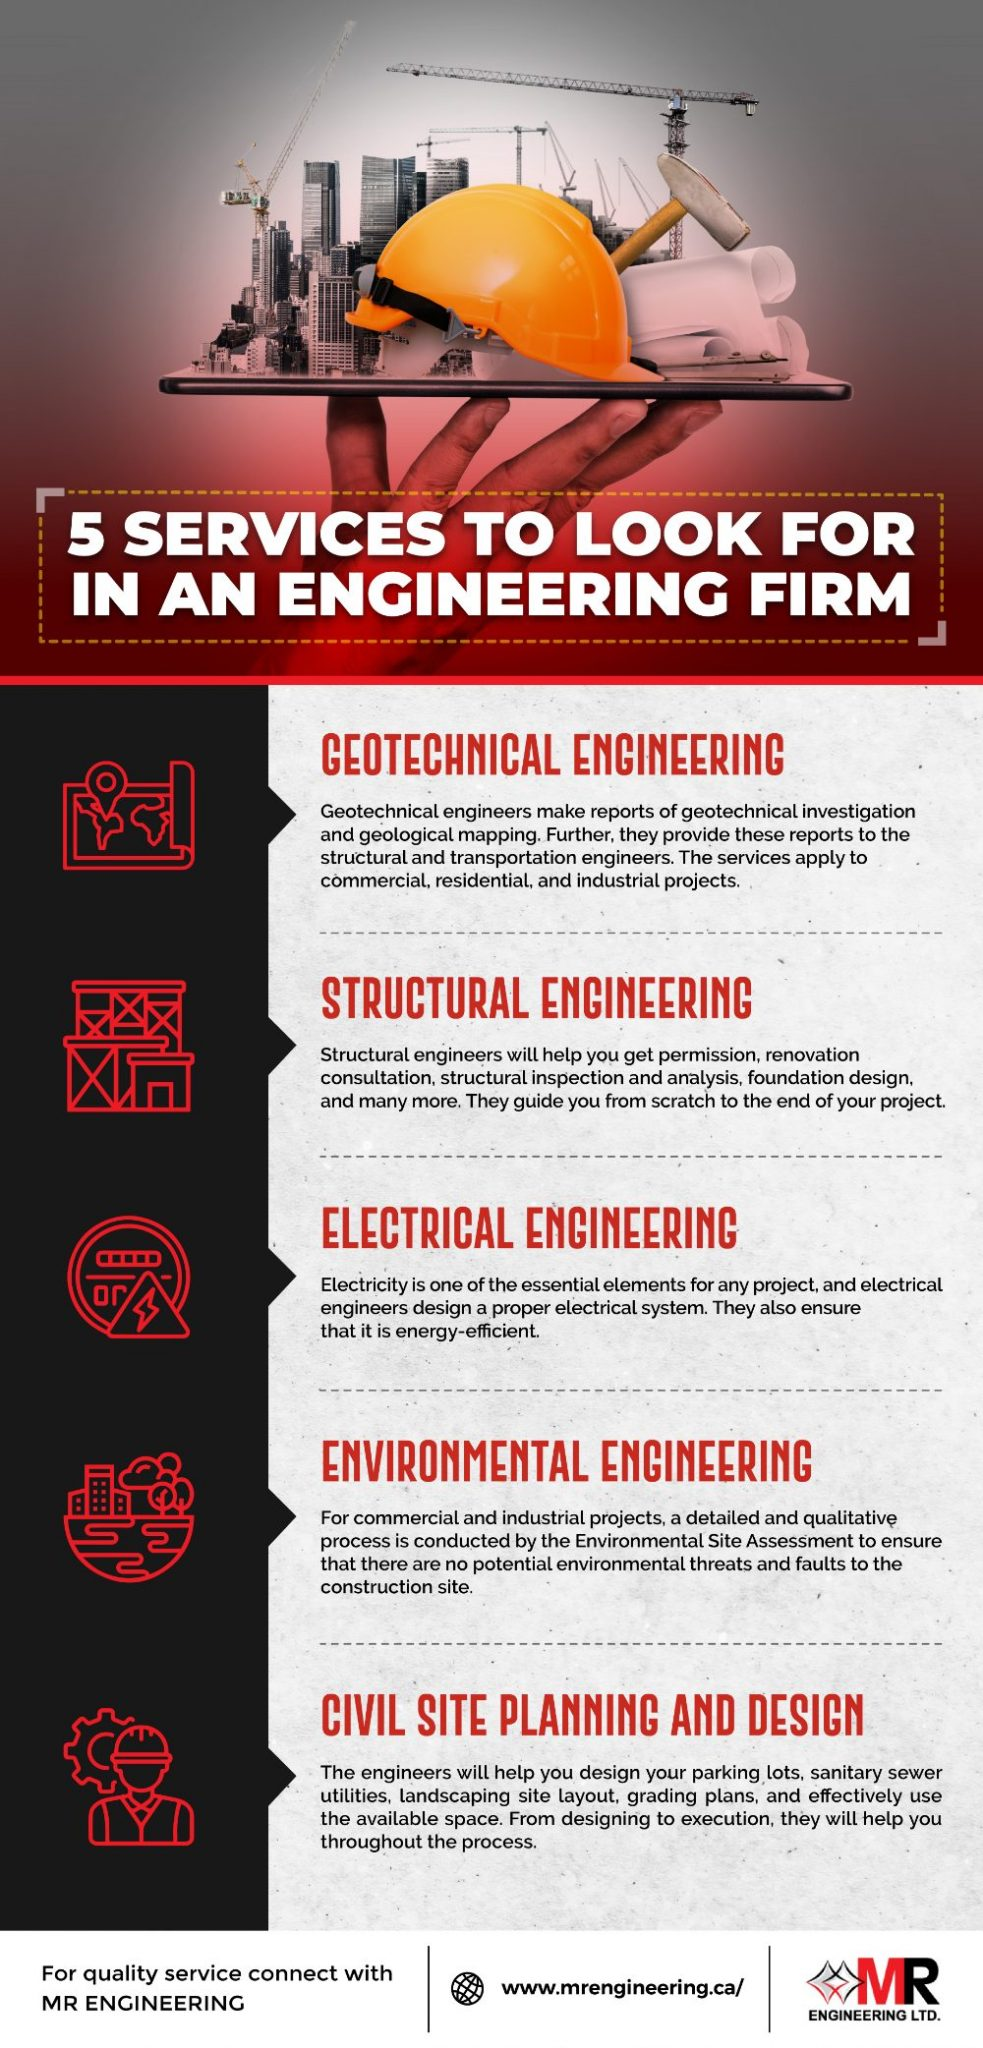 Services To Look for In an Engineering Firm